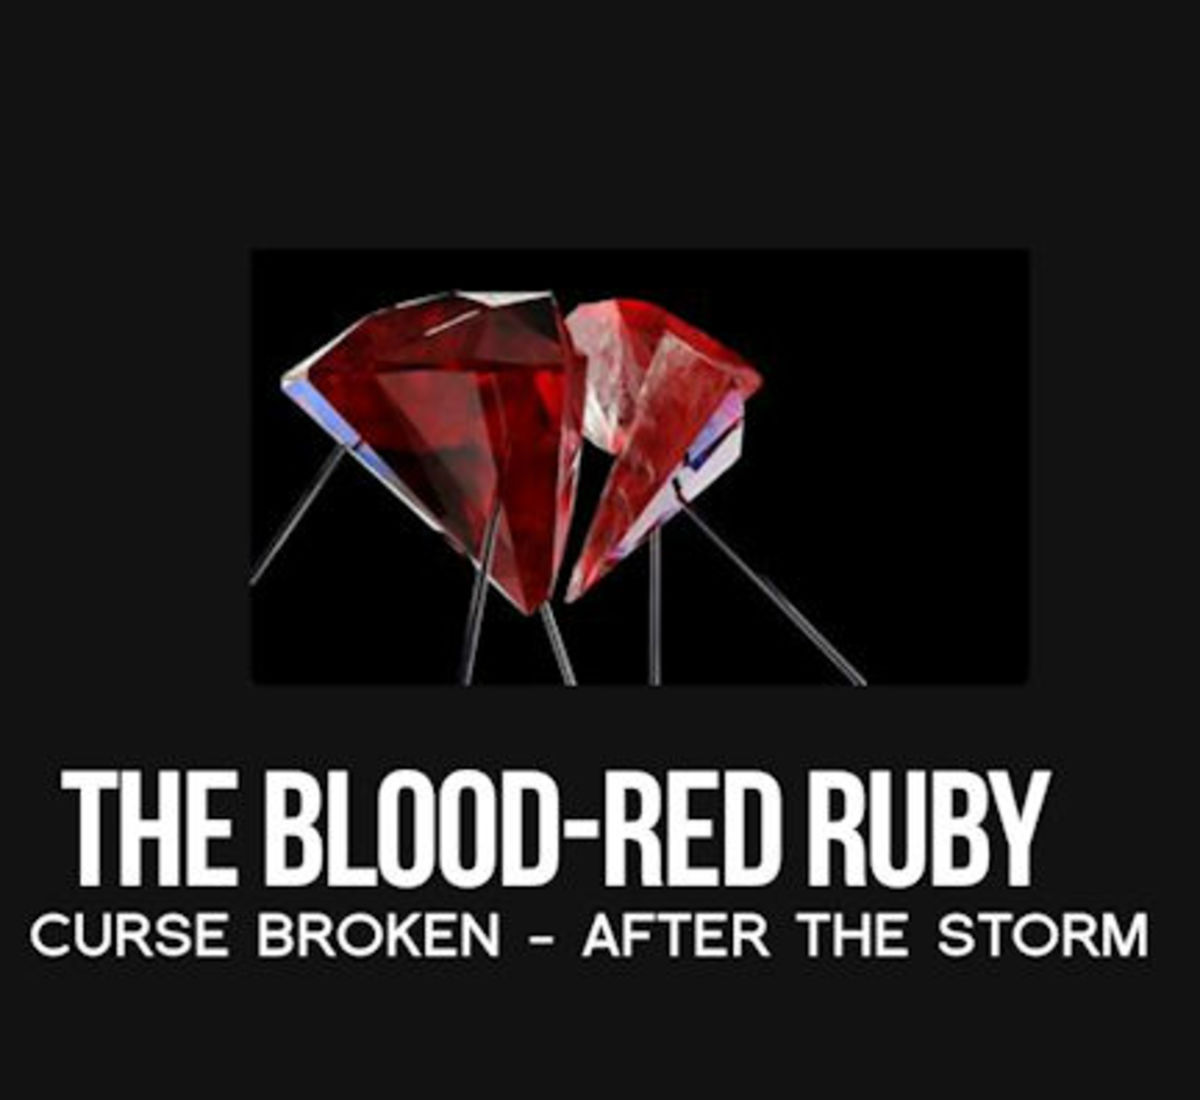 Before the curse was lifted ... there was no limit to the destruction this ruby caused!